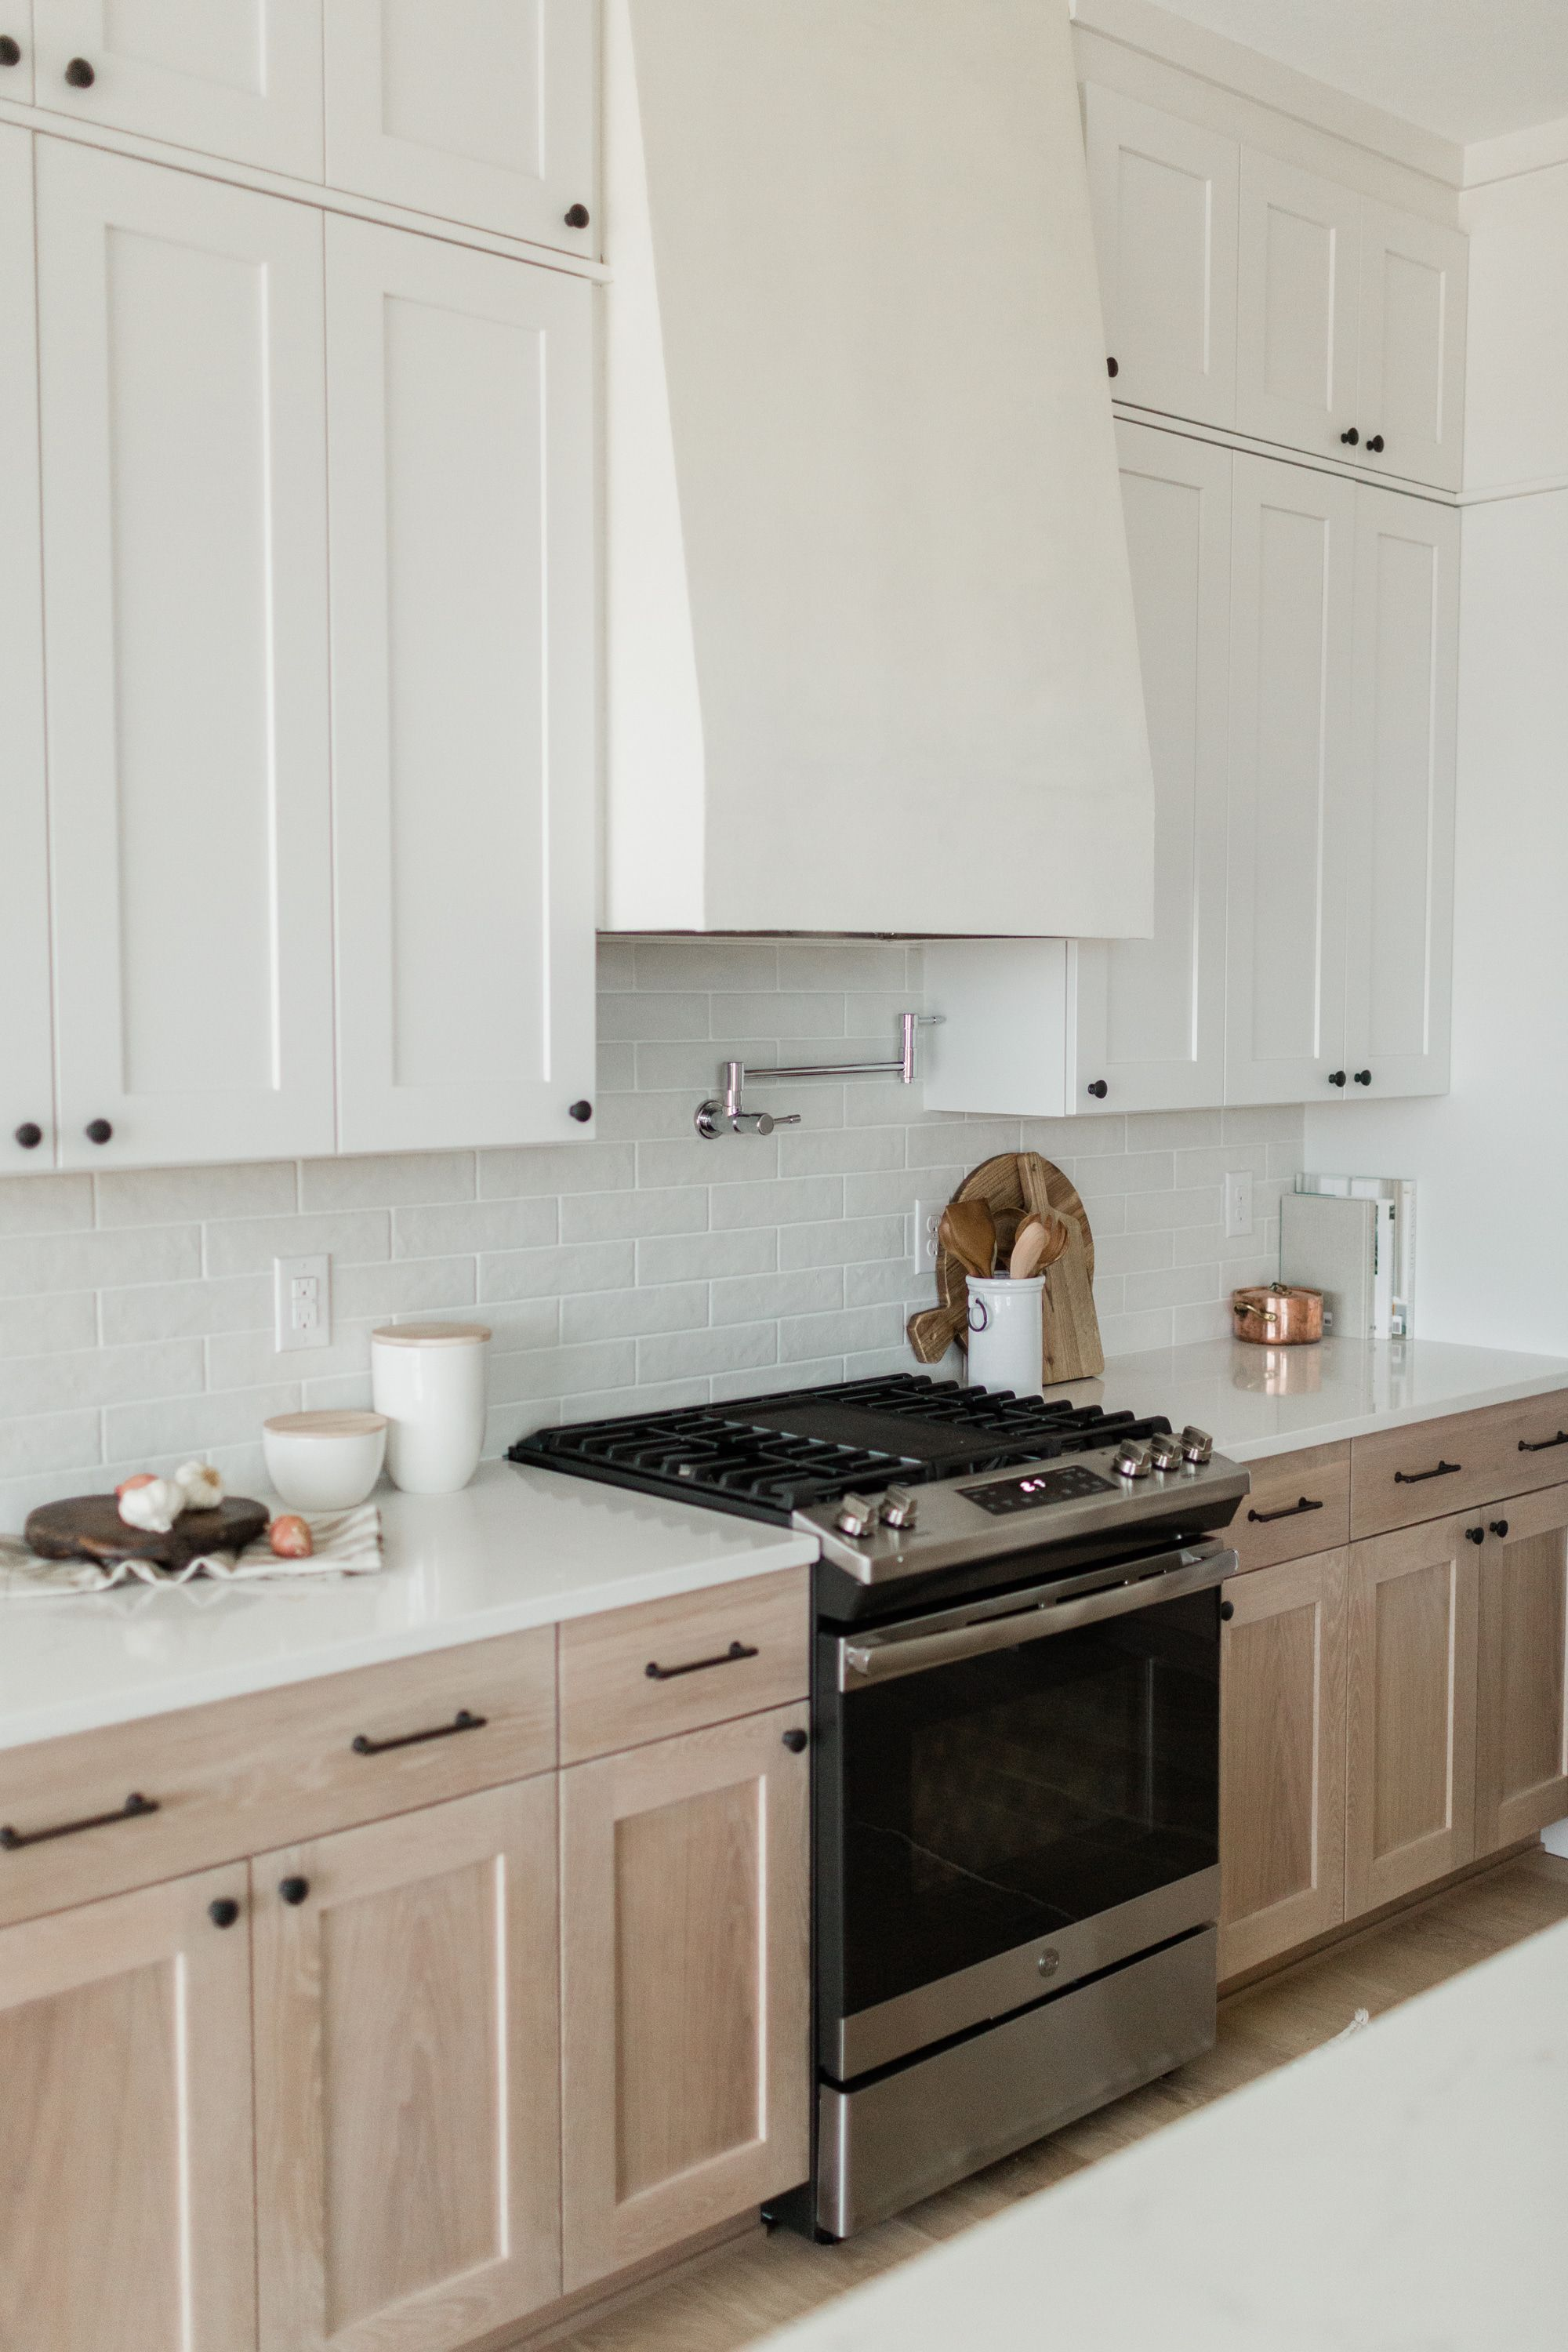 two toned kitchen cabinets in 2020 kitchen design kitchen kitchen cabinets on kitchen id=75015